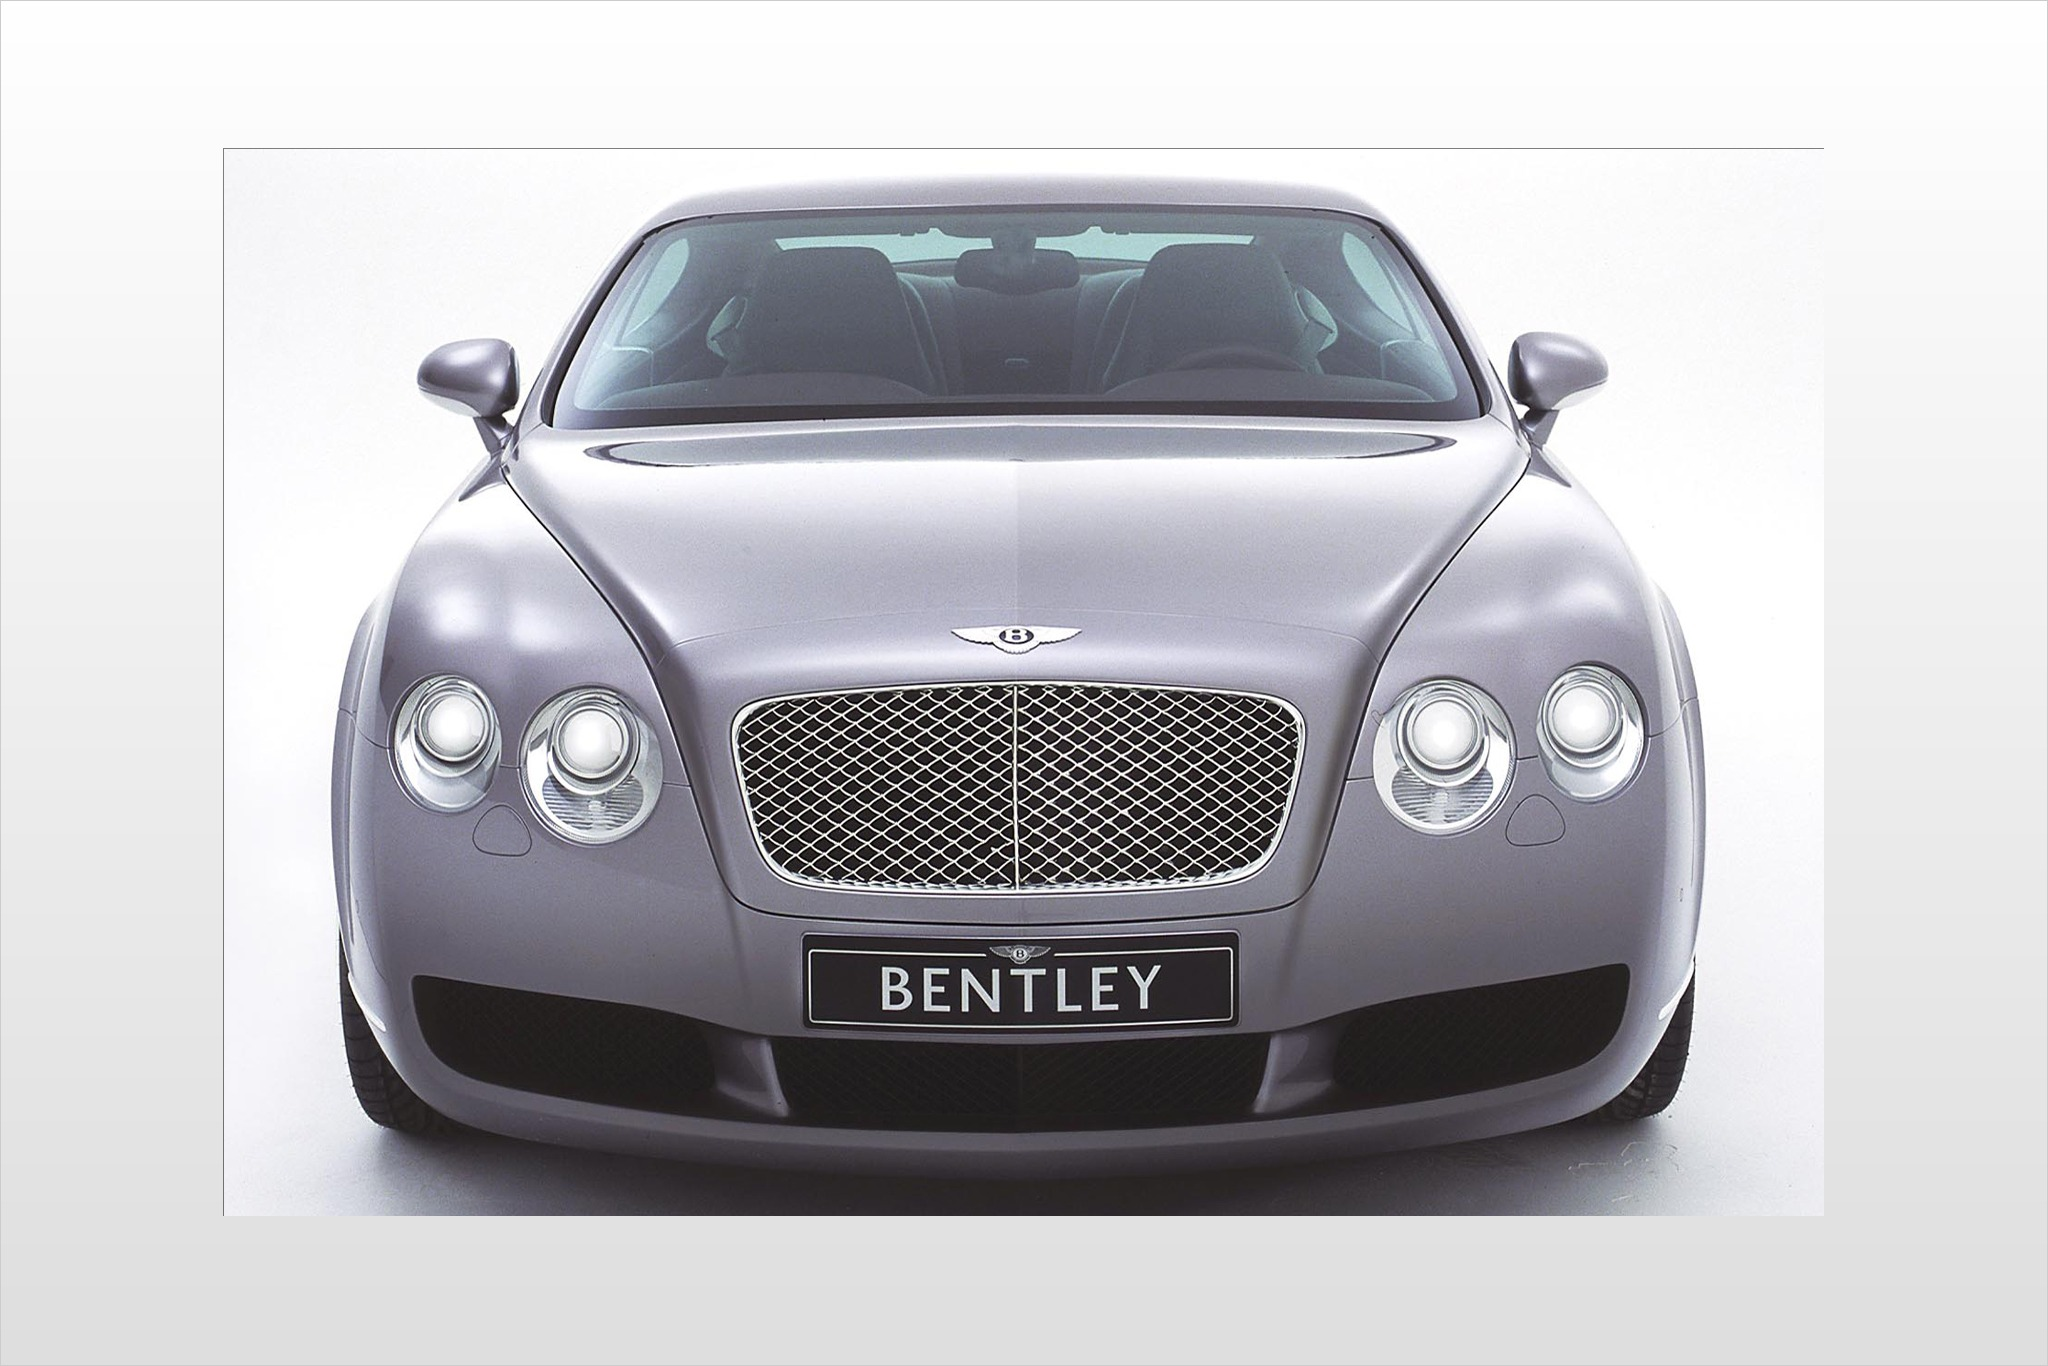 2008 Bentley Continental Gt Image 5